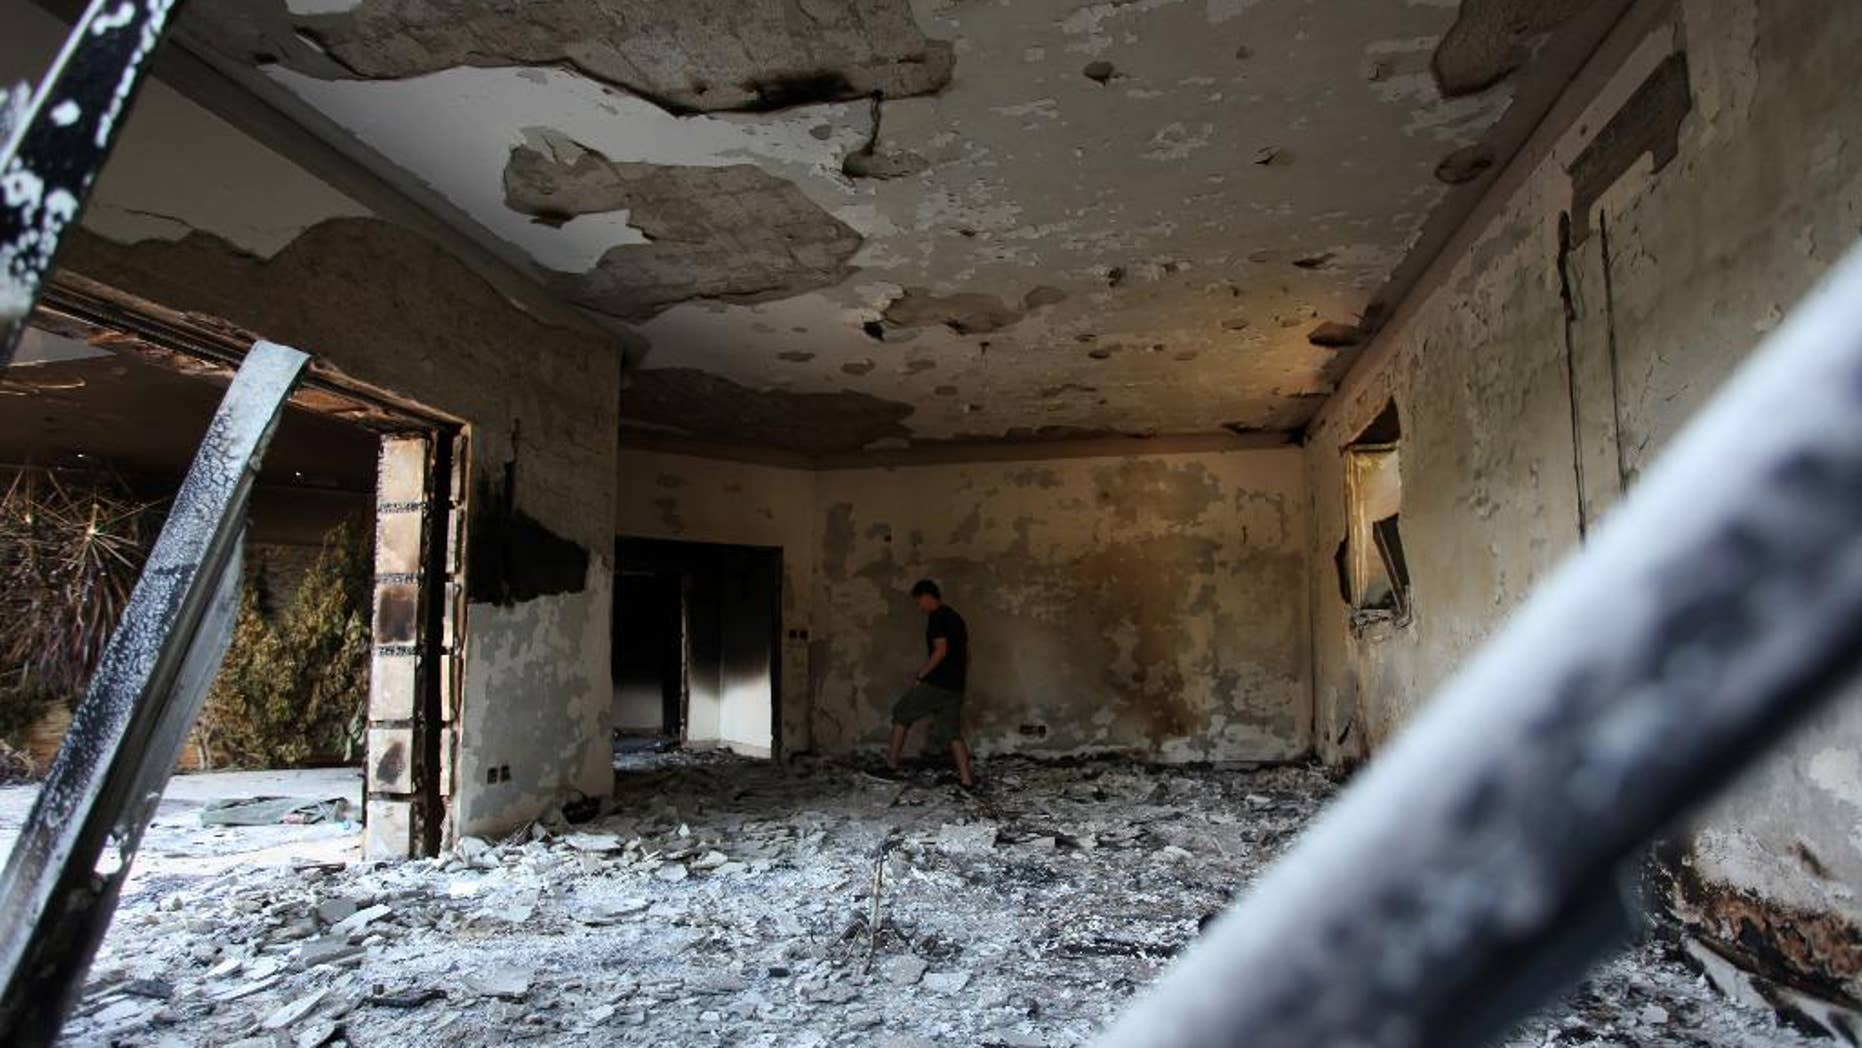 """FILE - This Sept. 13, 2012 file photo shows a Libyan man walking in the rubble of the damaged  U.S. consulate, after an attack that killed four Americans, including Ambassador Chris Stevens on the night of Tuesday, Sept. 11, 2012, in Benghazi, Libya. To congressional Republicans, """"Benghazi"""" is shorthand for incompetence and cover-up. Democrats hear it as the hollow sound of pointless investigations. It is, in fact, a Mediterranean port city in Libya that was the site of an attack on an American diplomatic compound on the 11th anniversary of 9/11 that killed U.S. Ambassador Chris Stevens and three other Americans. That's nearly all that U.S. politicians can agree on about Benghazi. (AP Photo/Mohammad Hannon, File)"""